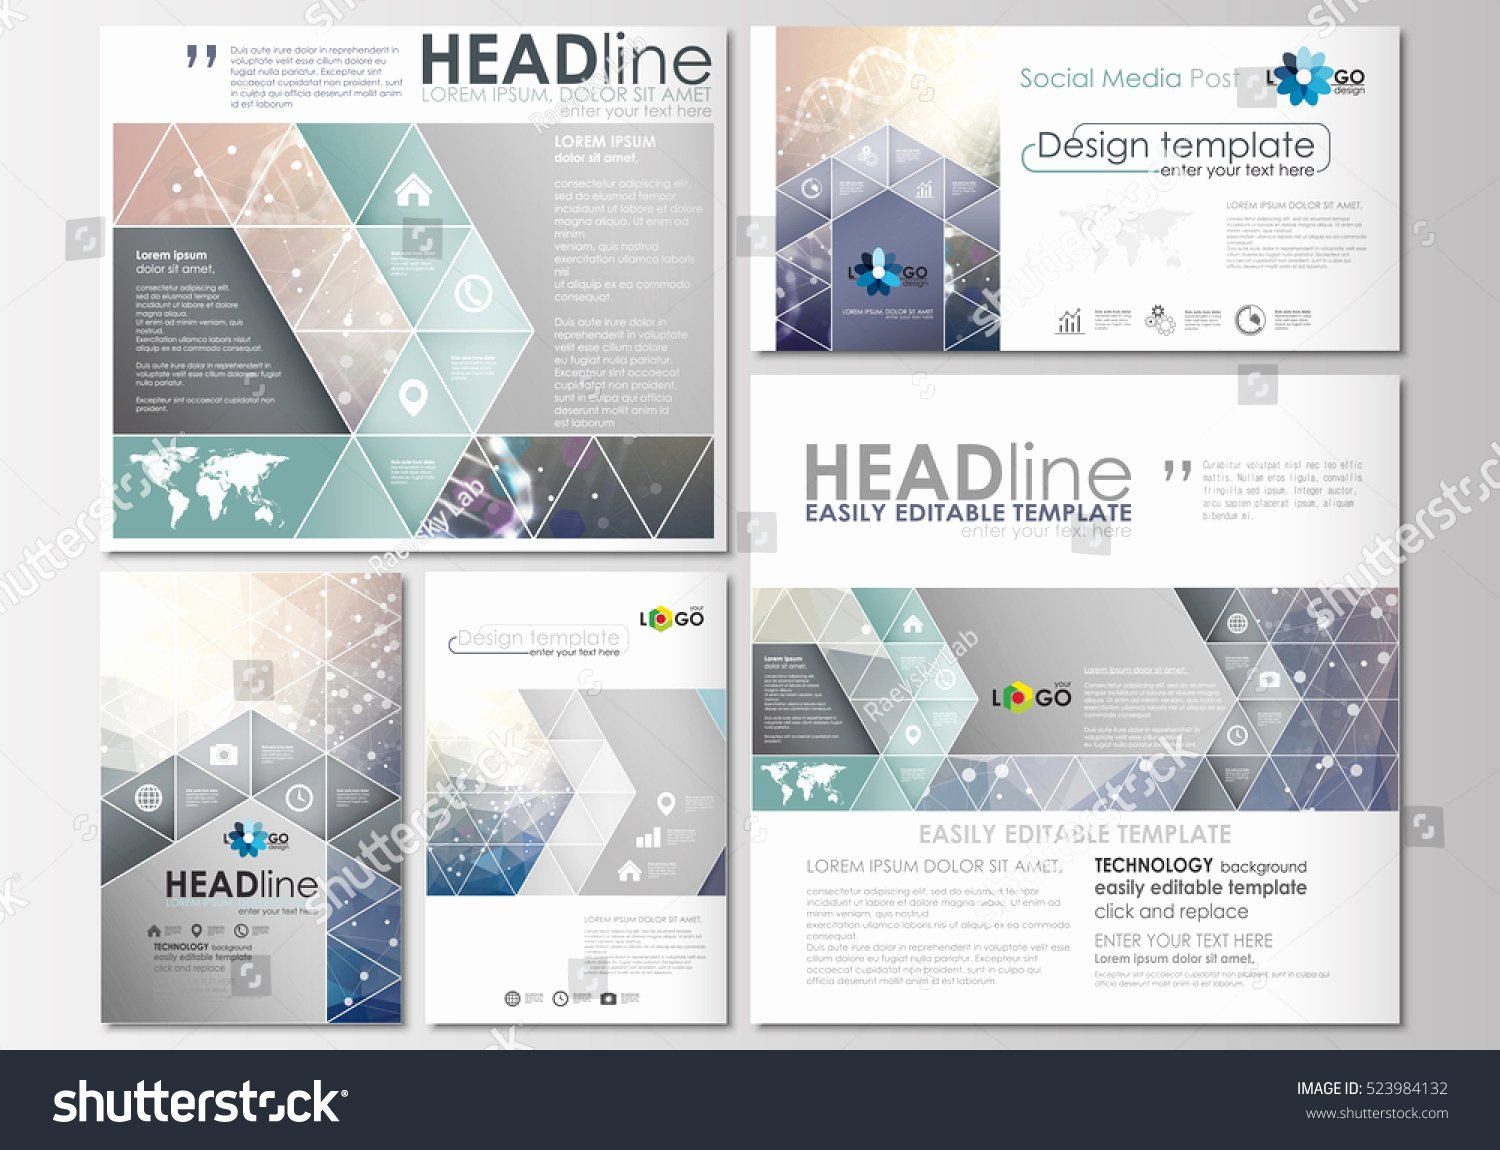 Social Media Posting Template Fresh social Media Posts Set Business Templates Stock Vector